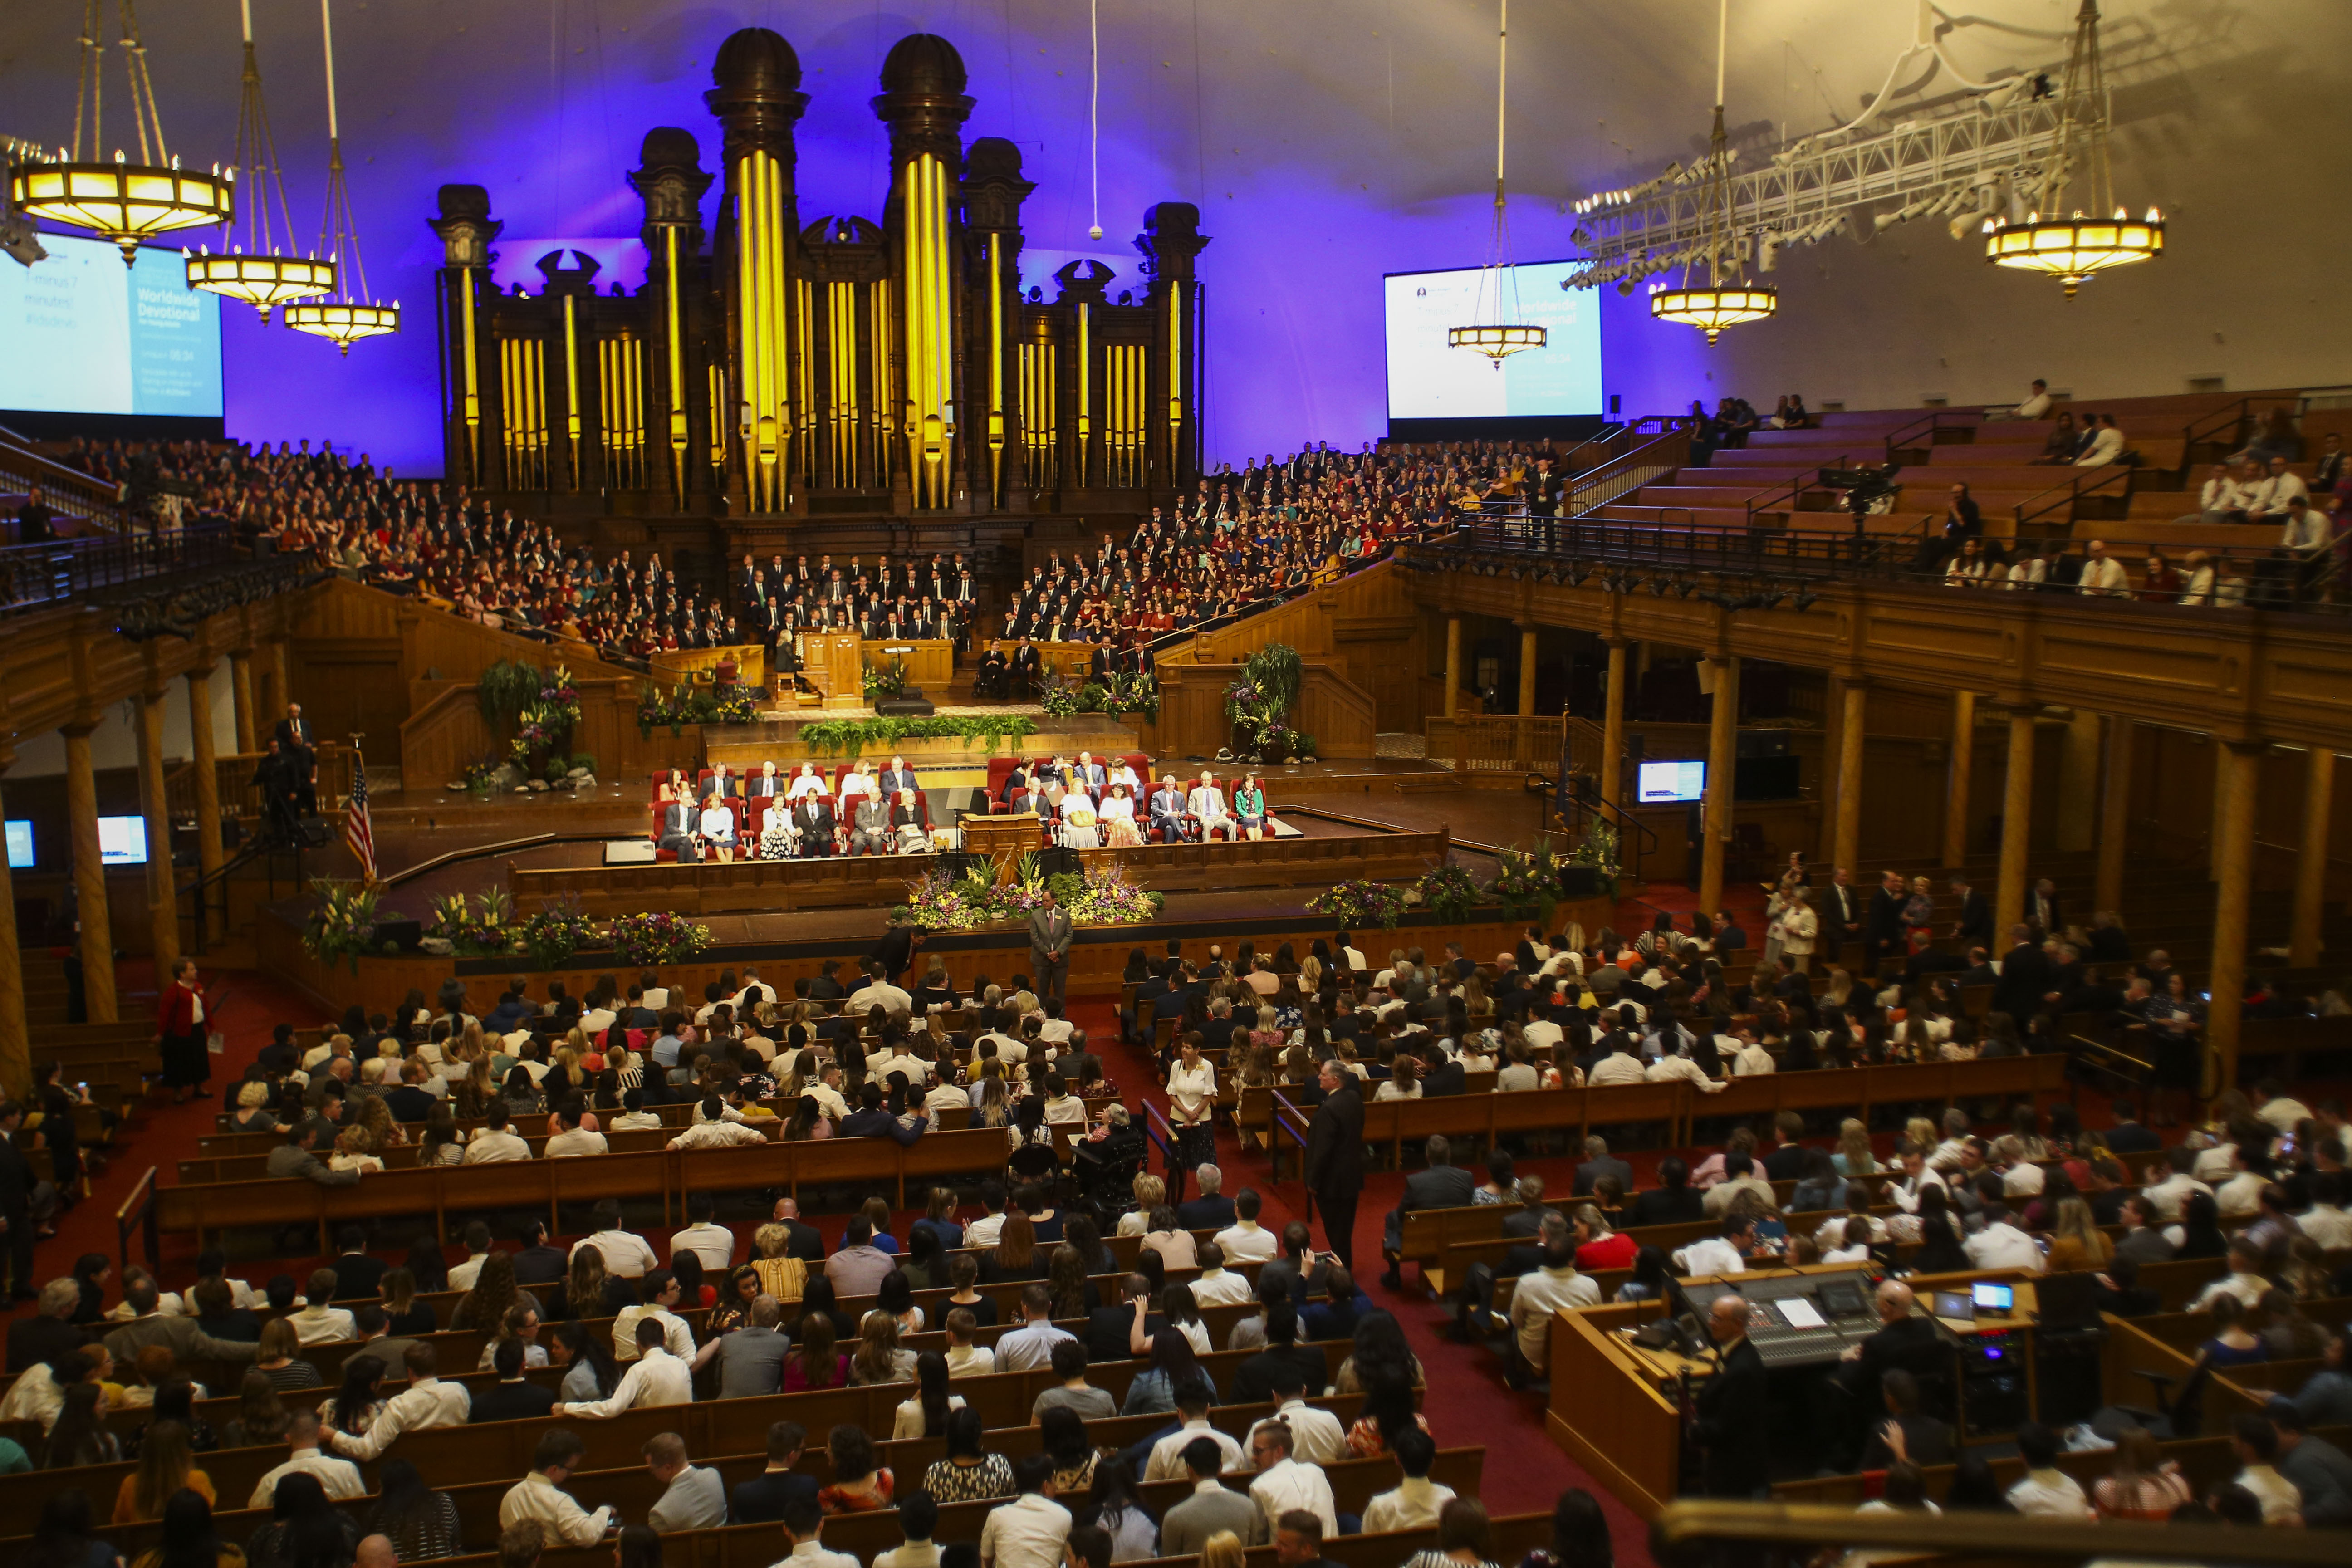 The Salt Lake Tabernacle fills up before Elder Carl B. Cook speaks during the Worldwide Devotional for Young Adults at the Salt Lake Tabernacle in Salt Lake City on Sunday, May 5, 2019.